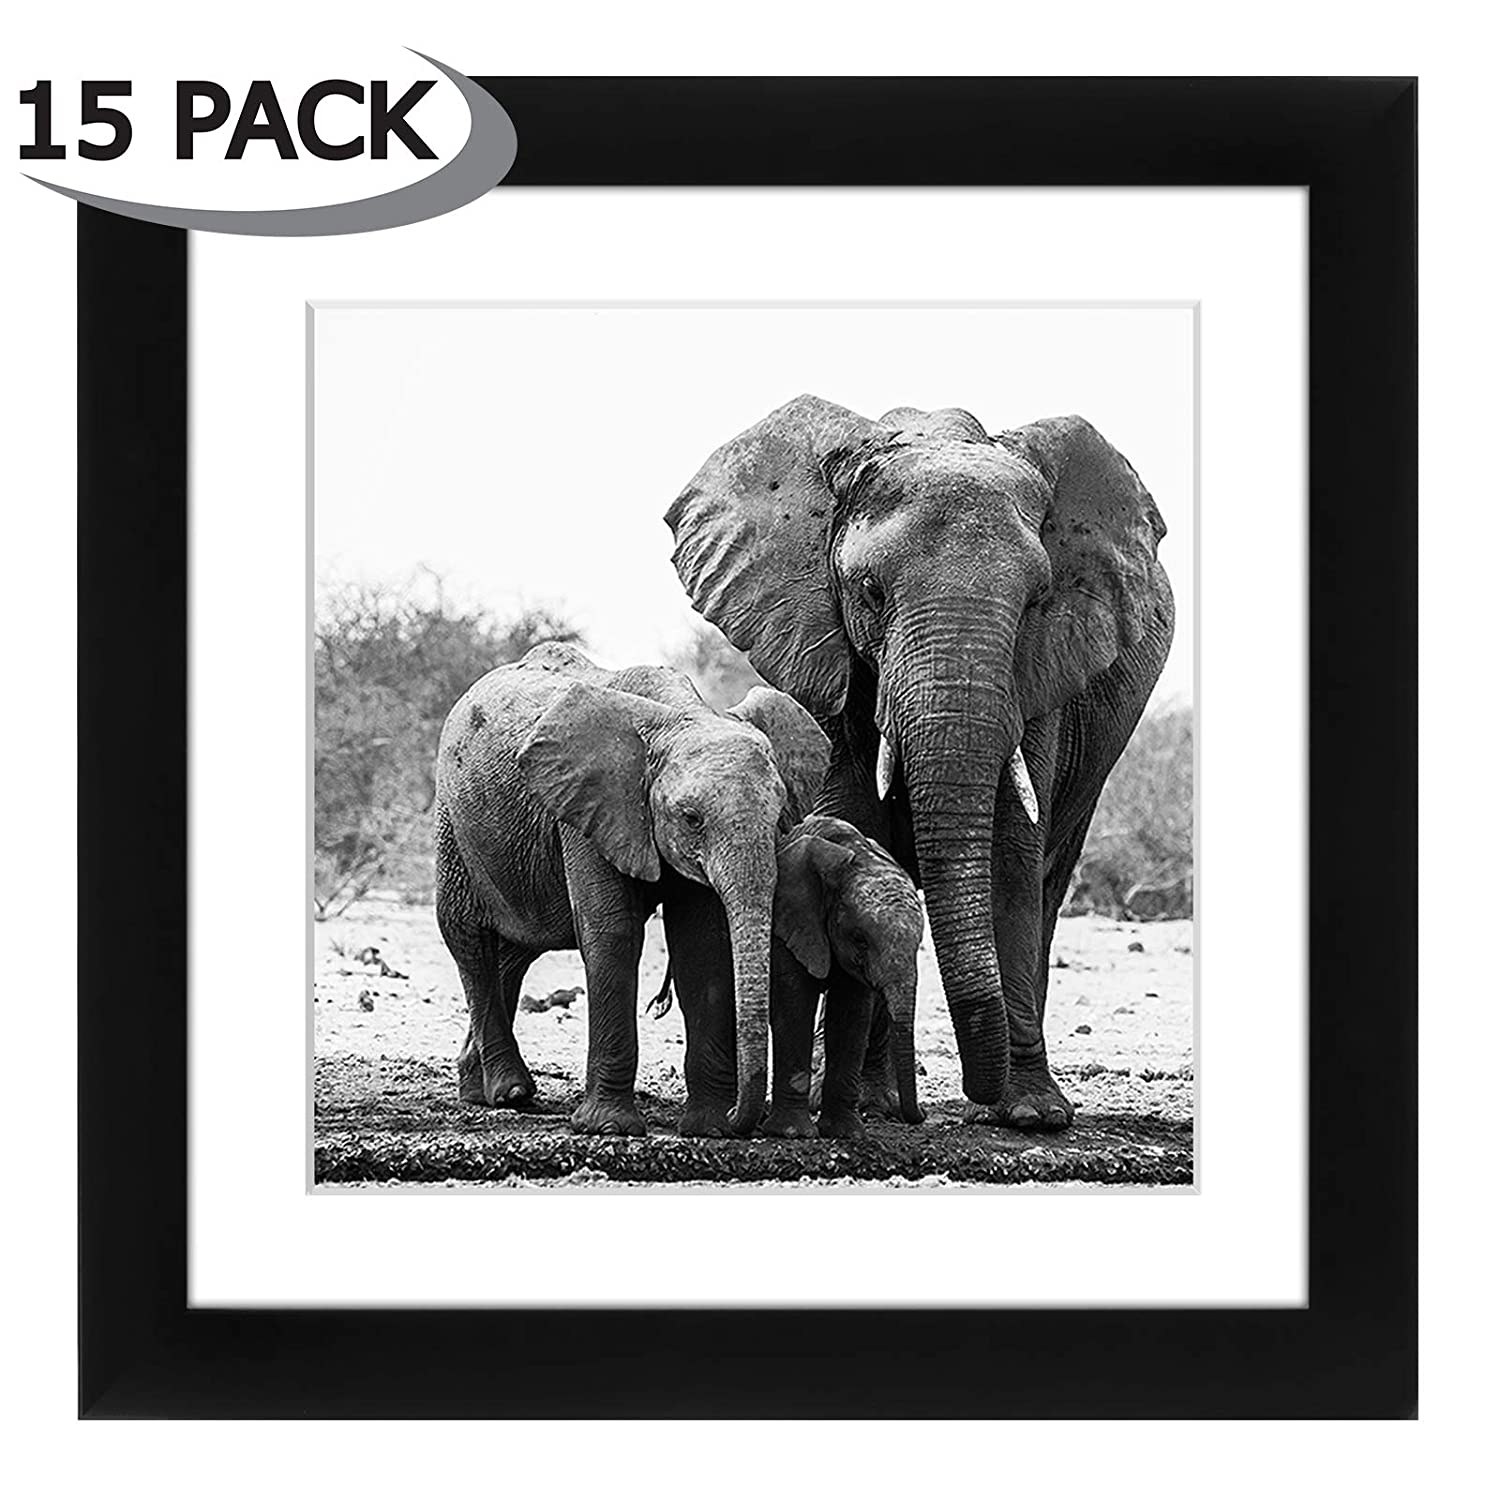 Black Americanflat 8x10 Picture Frame